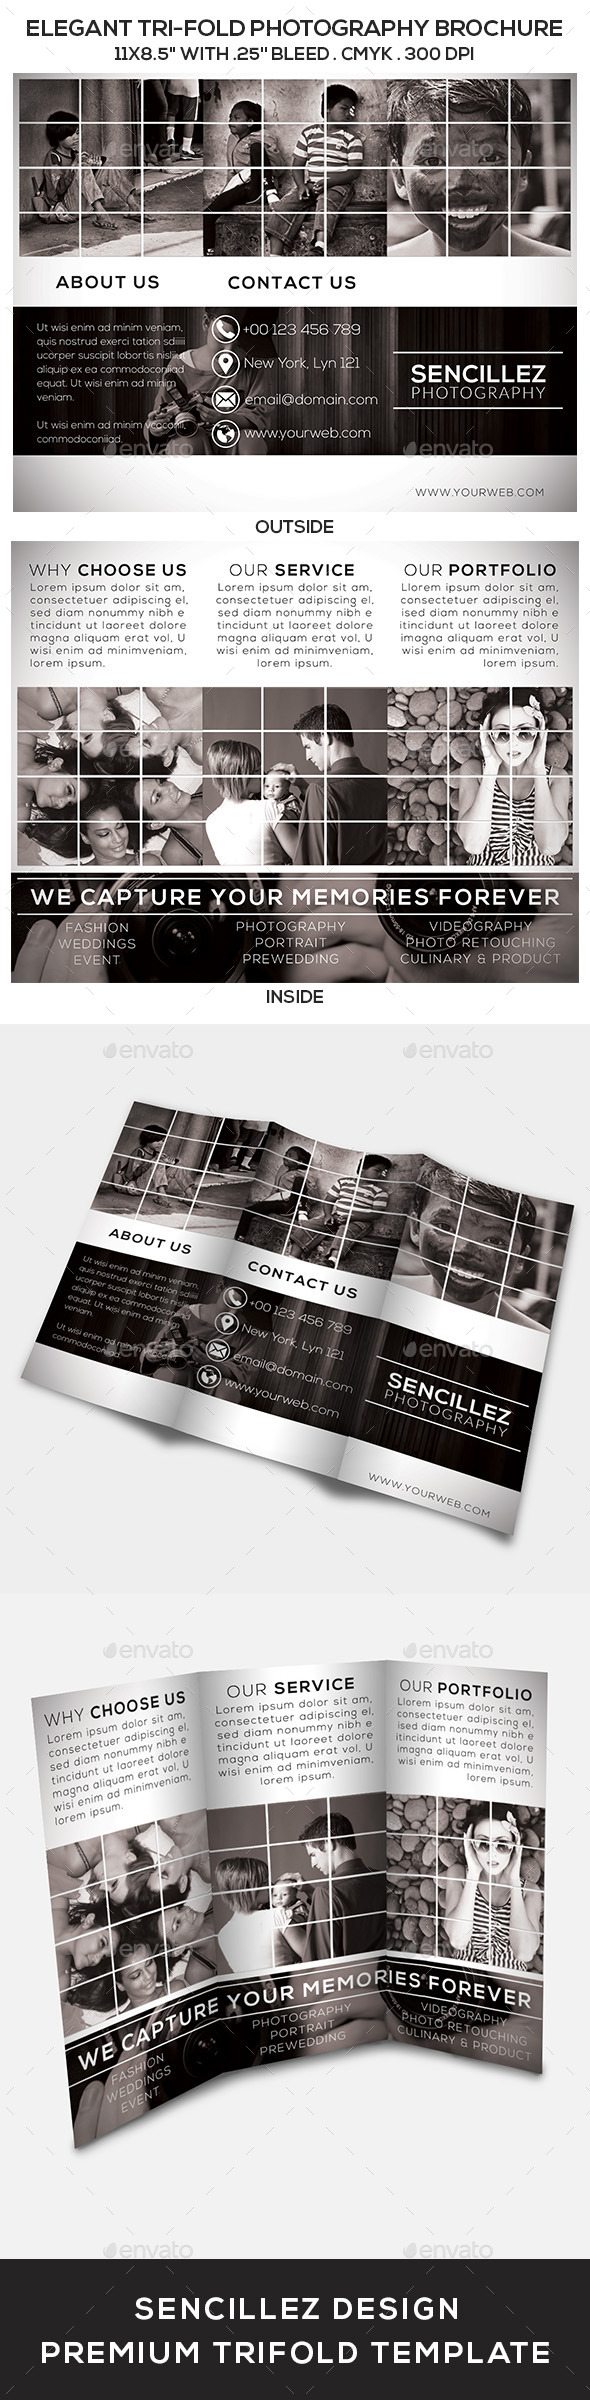 GraphicRiver Elegant Tri-Fold Photography Brochure 9661555